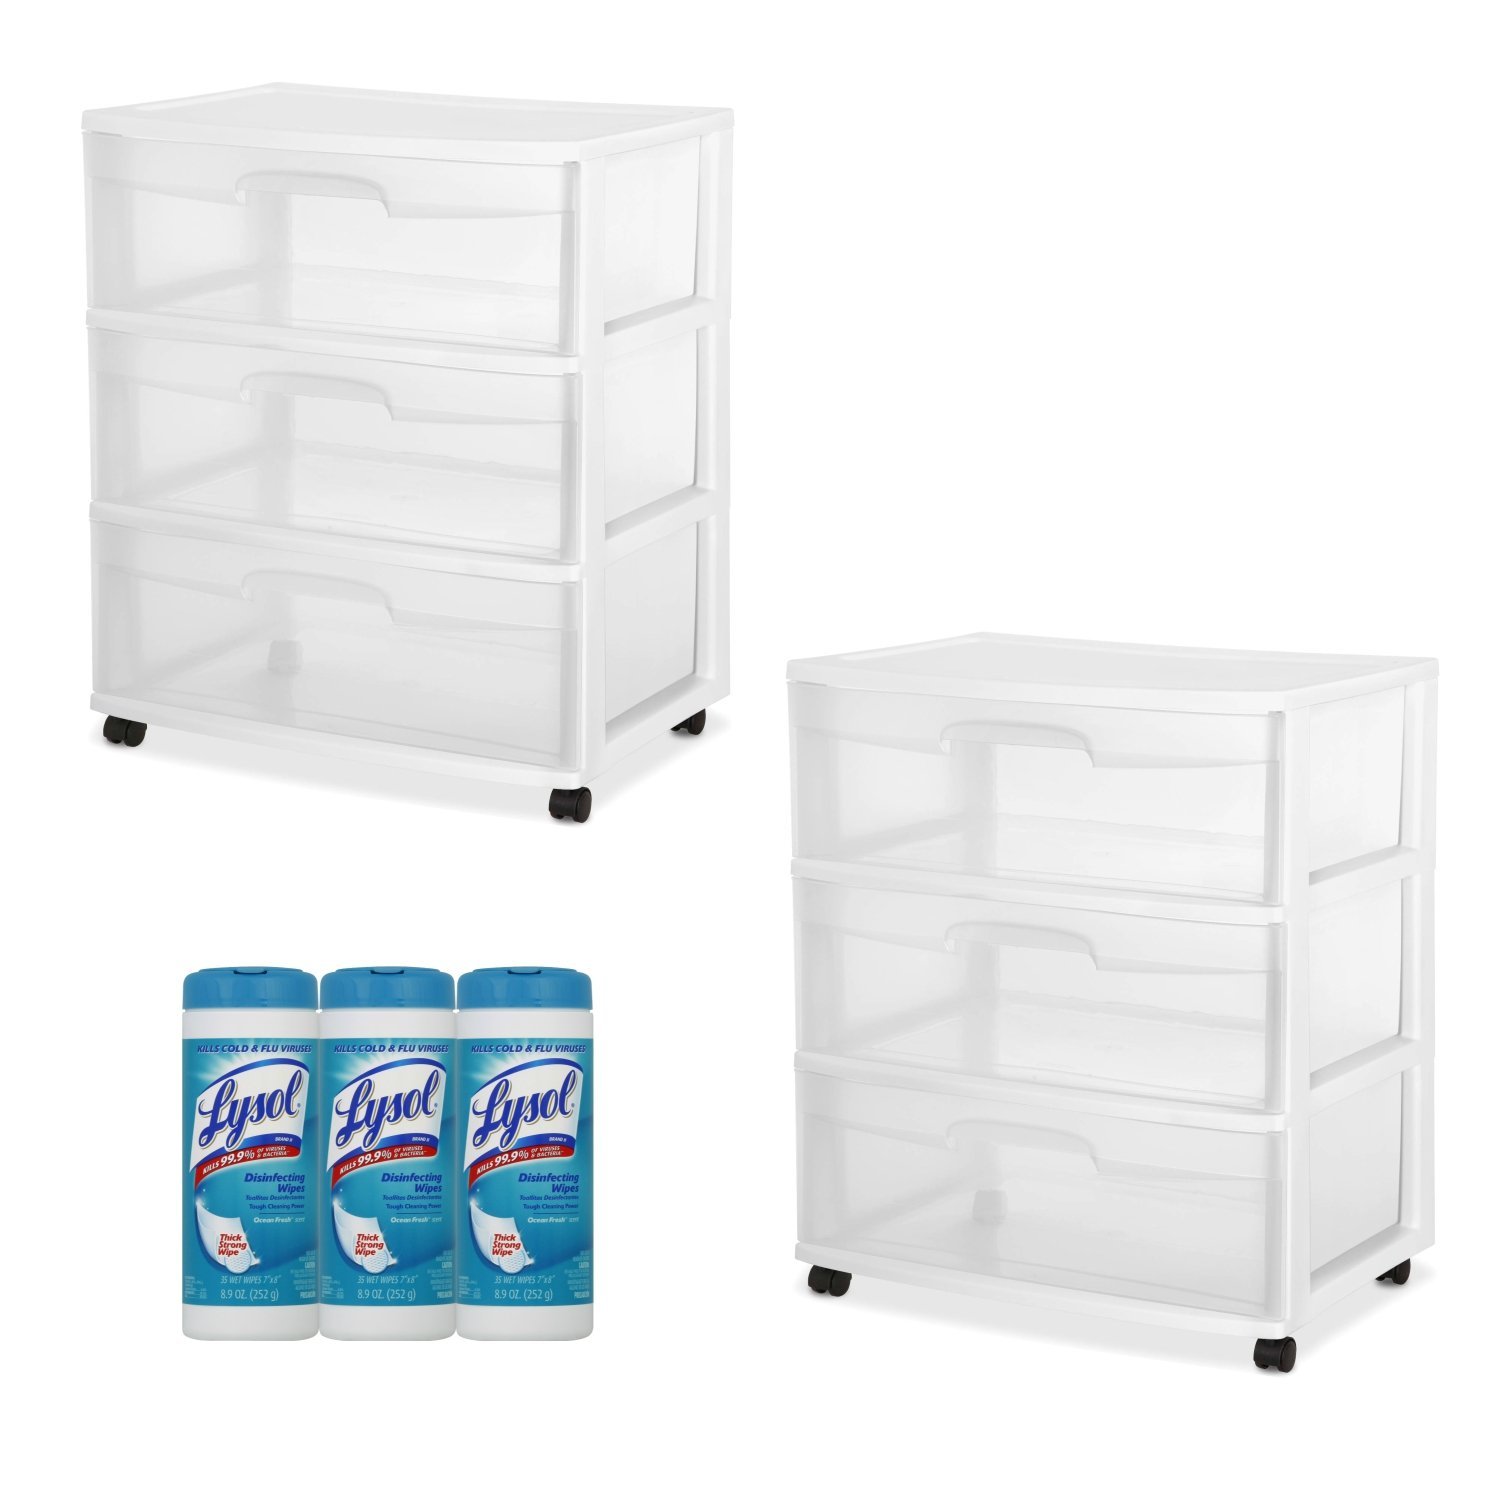 Sterilite 3-Drawer Wide Cart White Frame with See-Through Drawers, 2-PACK with Lysol Disinfecting Wipes, 105 Count